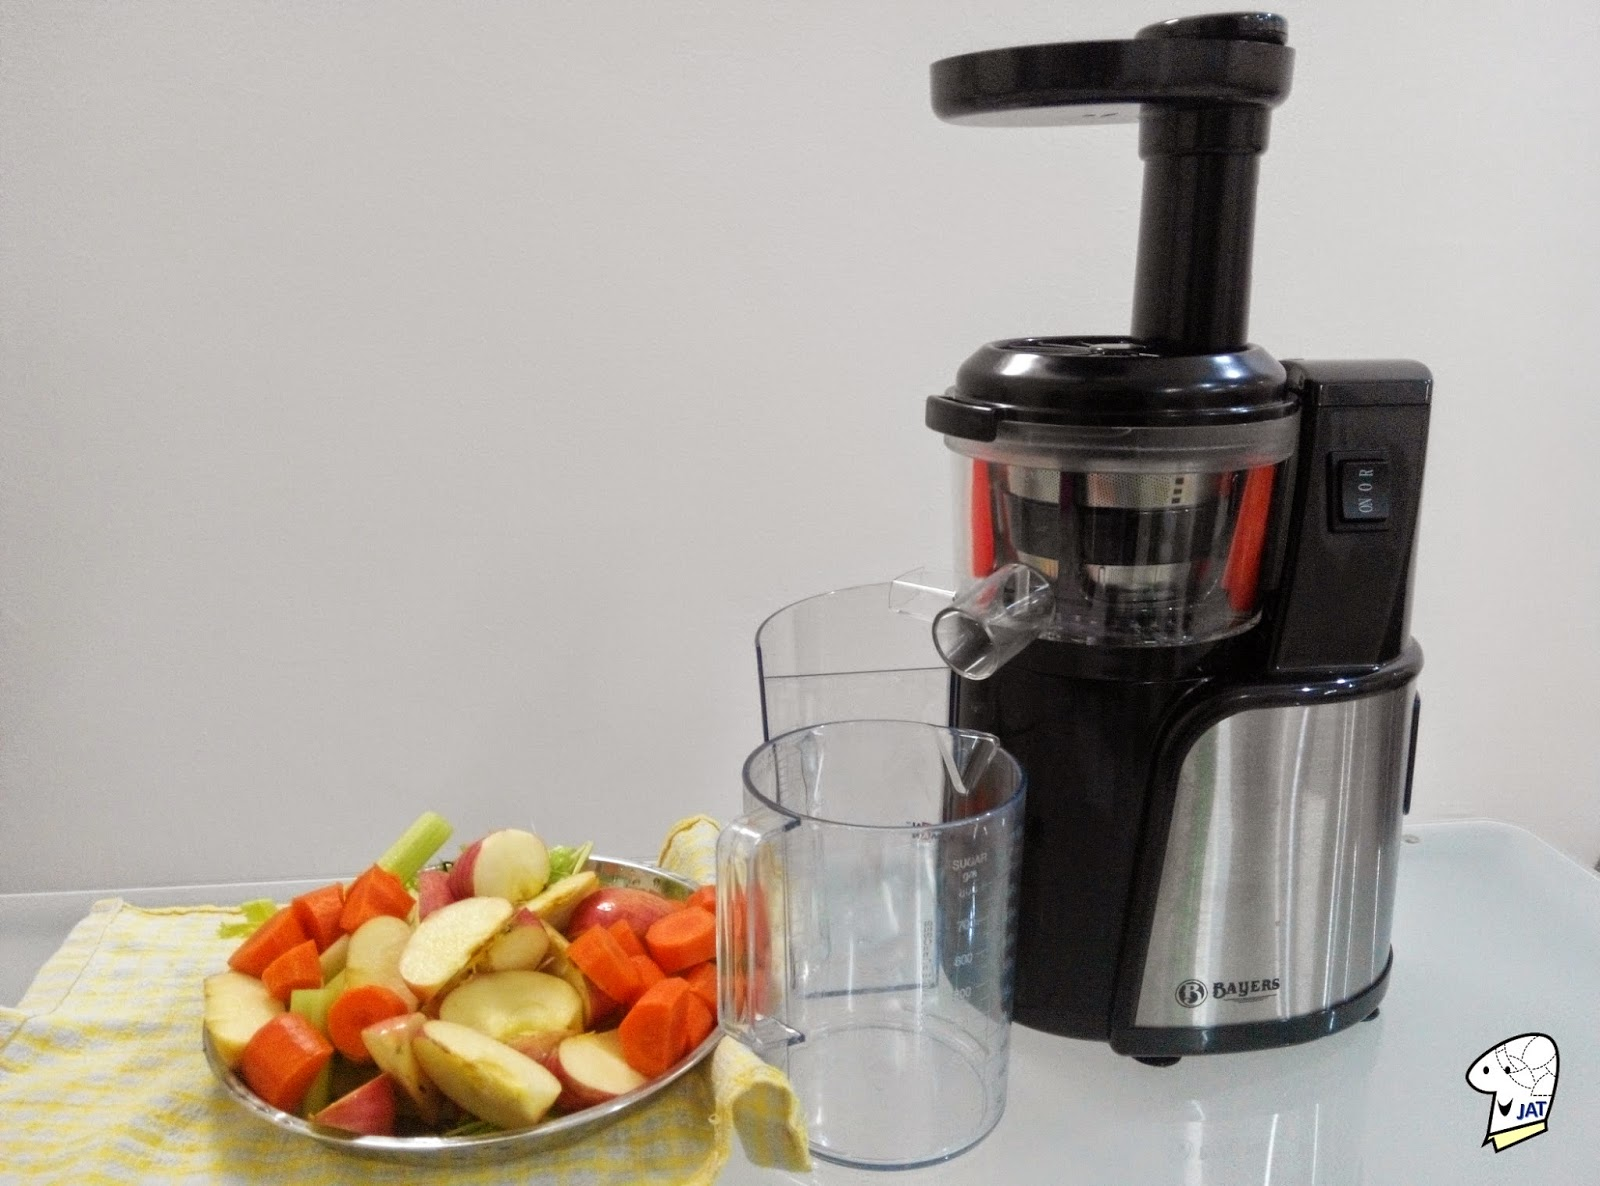 Bayers Dual Stage Slow Juicer and fruits